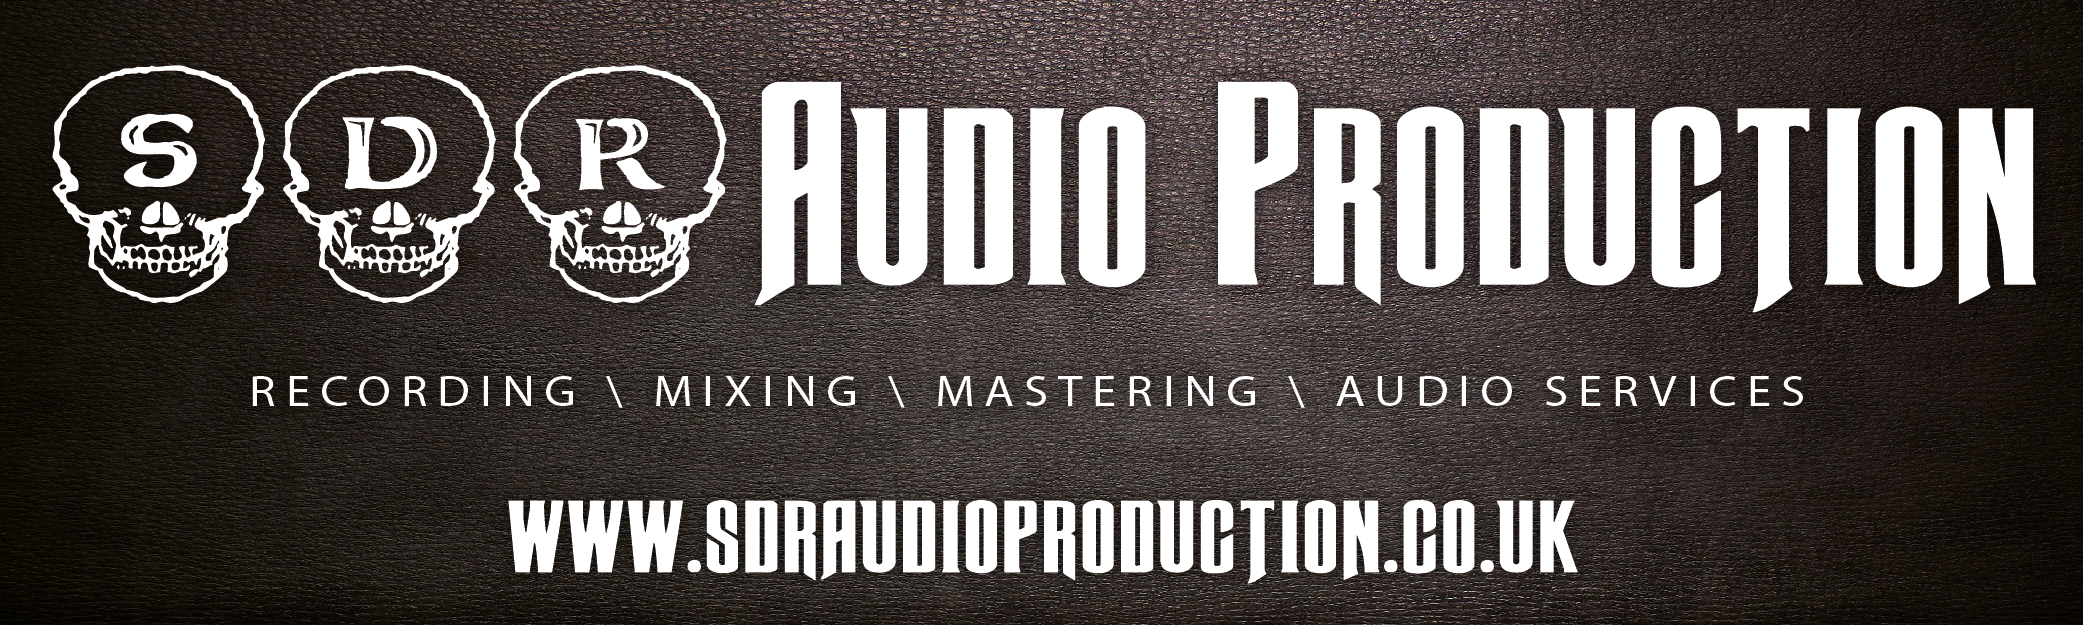 Record Producer / Mixing & Mastering Engineer